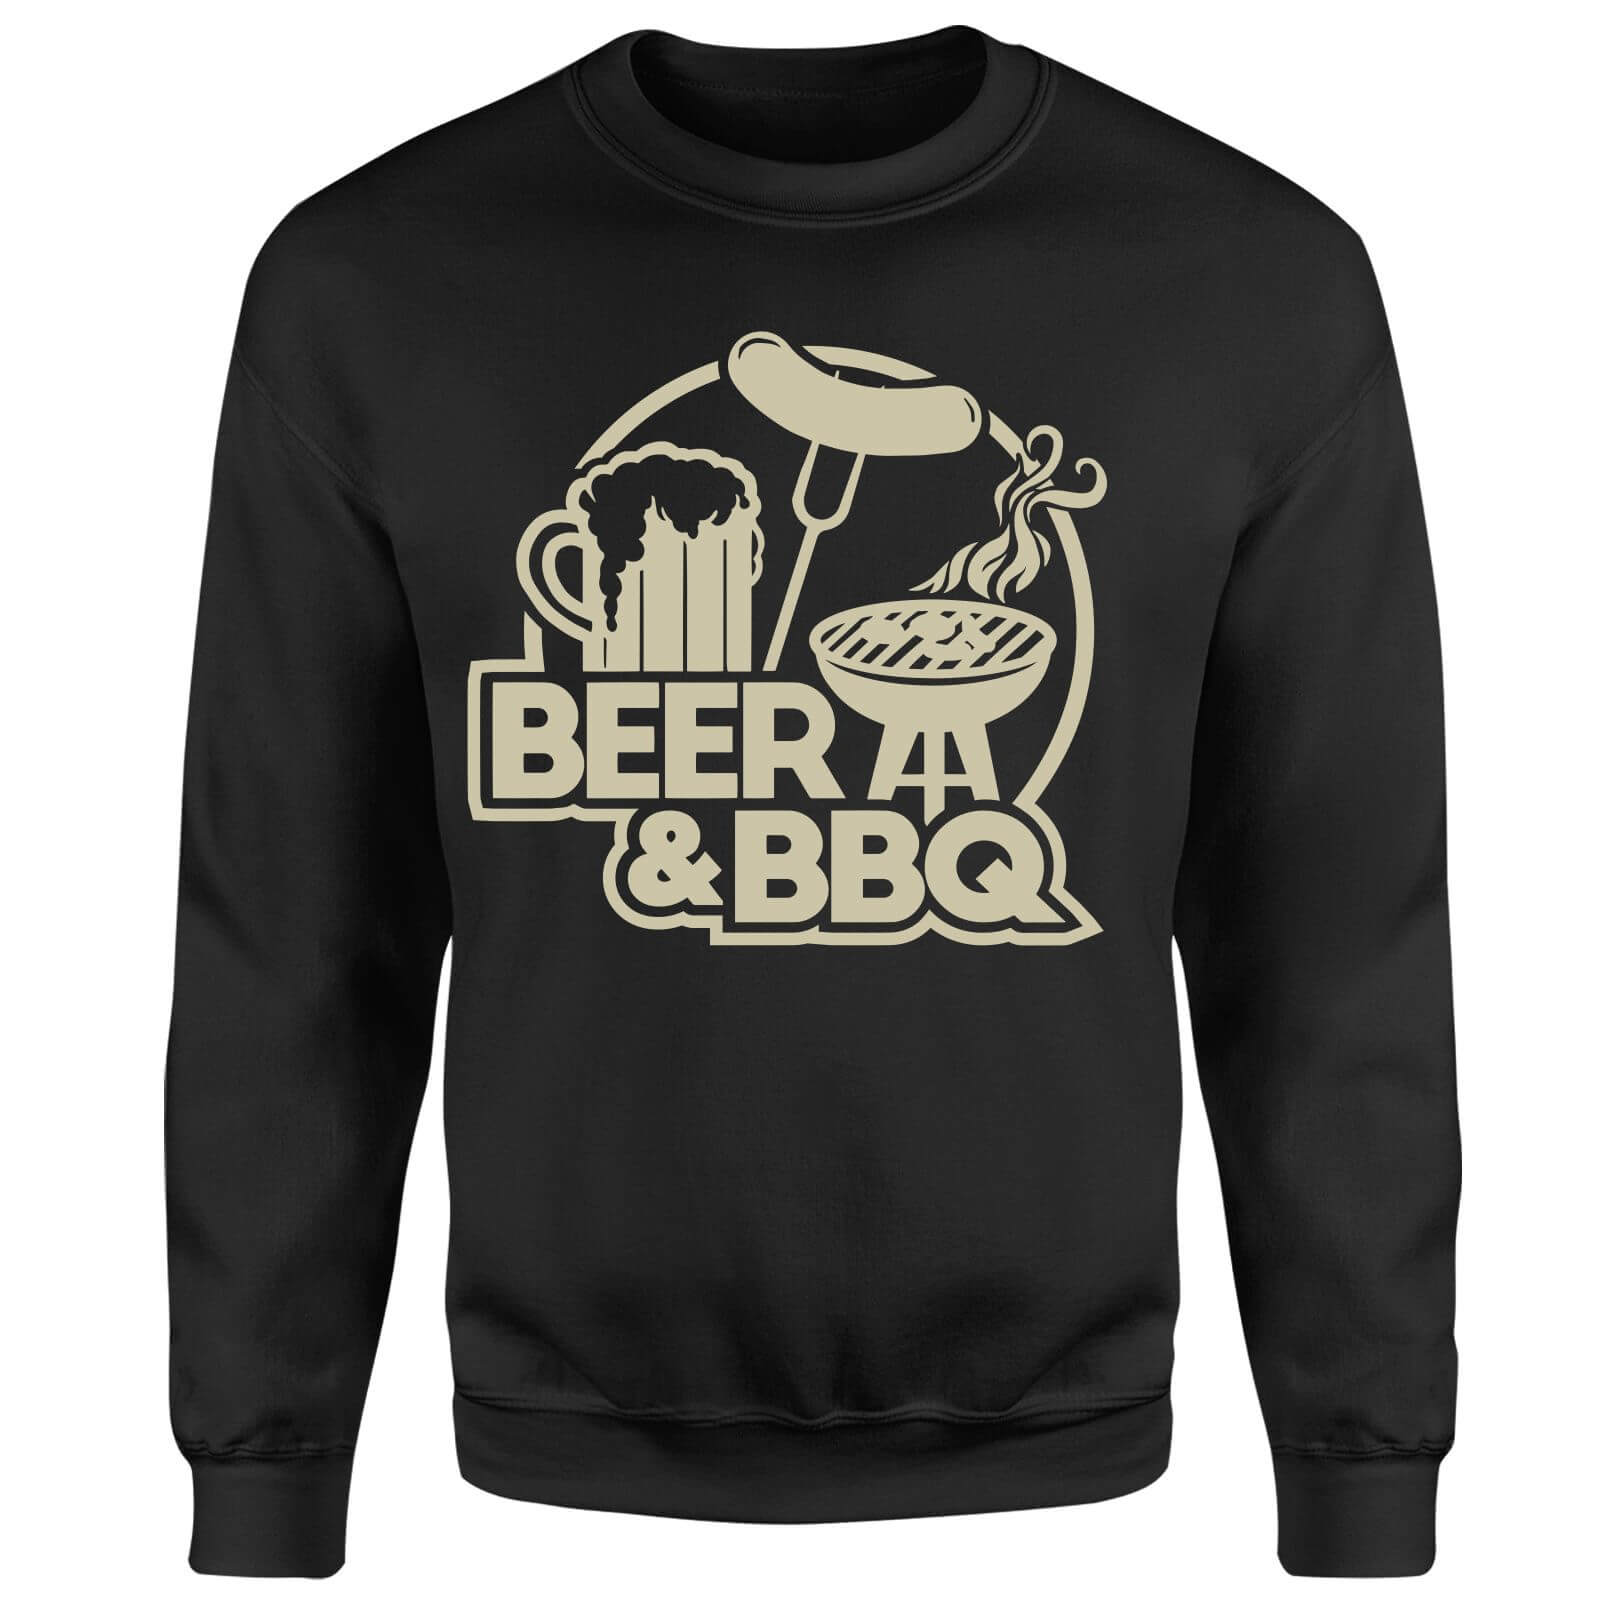 Beer & BBQ Sweatshirt - Black